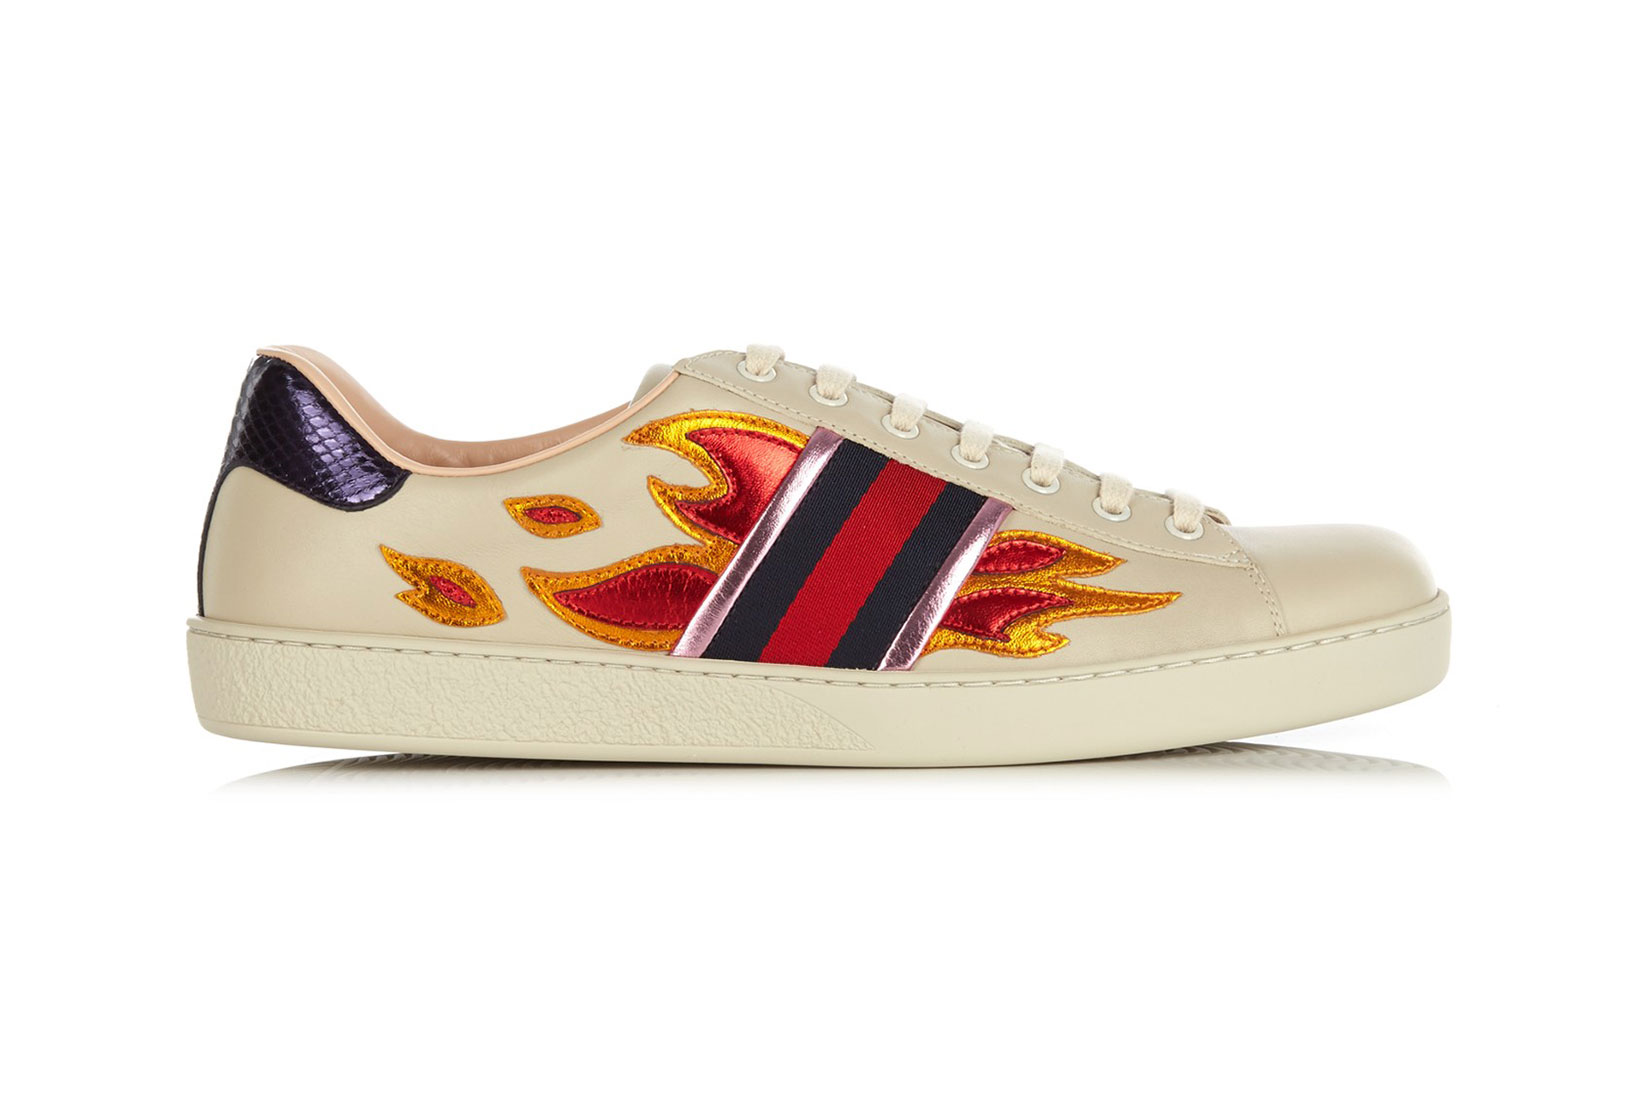 Gucci Shoes Low Top